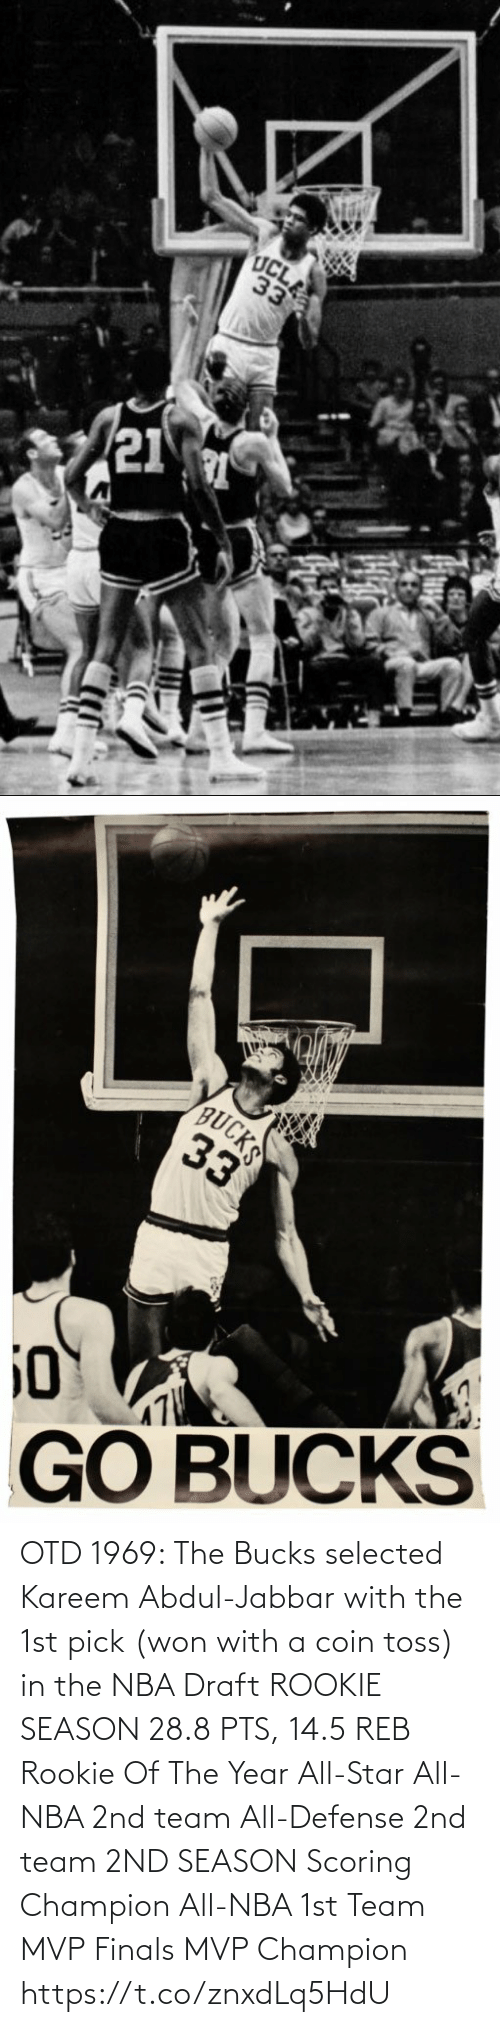 team: OTD 1969: The Bucks selected Kareem Abdul-Jabbar with the 1st pick (won with a coin toss) in the NBA Draft   ROOKIE SEASON 28.8 PTS, 14.5 REB Rookie Of The Year All-Star All-NBA 2nd team All-Defense 2nd team  2ND SEASON Scoring Champion All-NBA 1st Team MVP Finals MVP Champion https://t.co/znxdLq5HdU